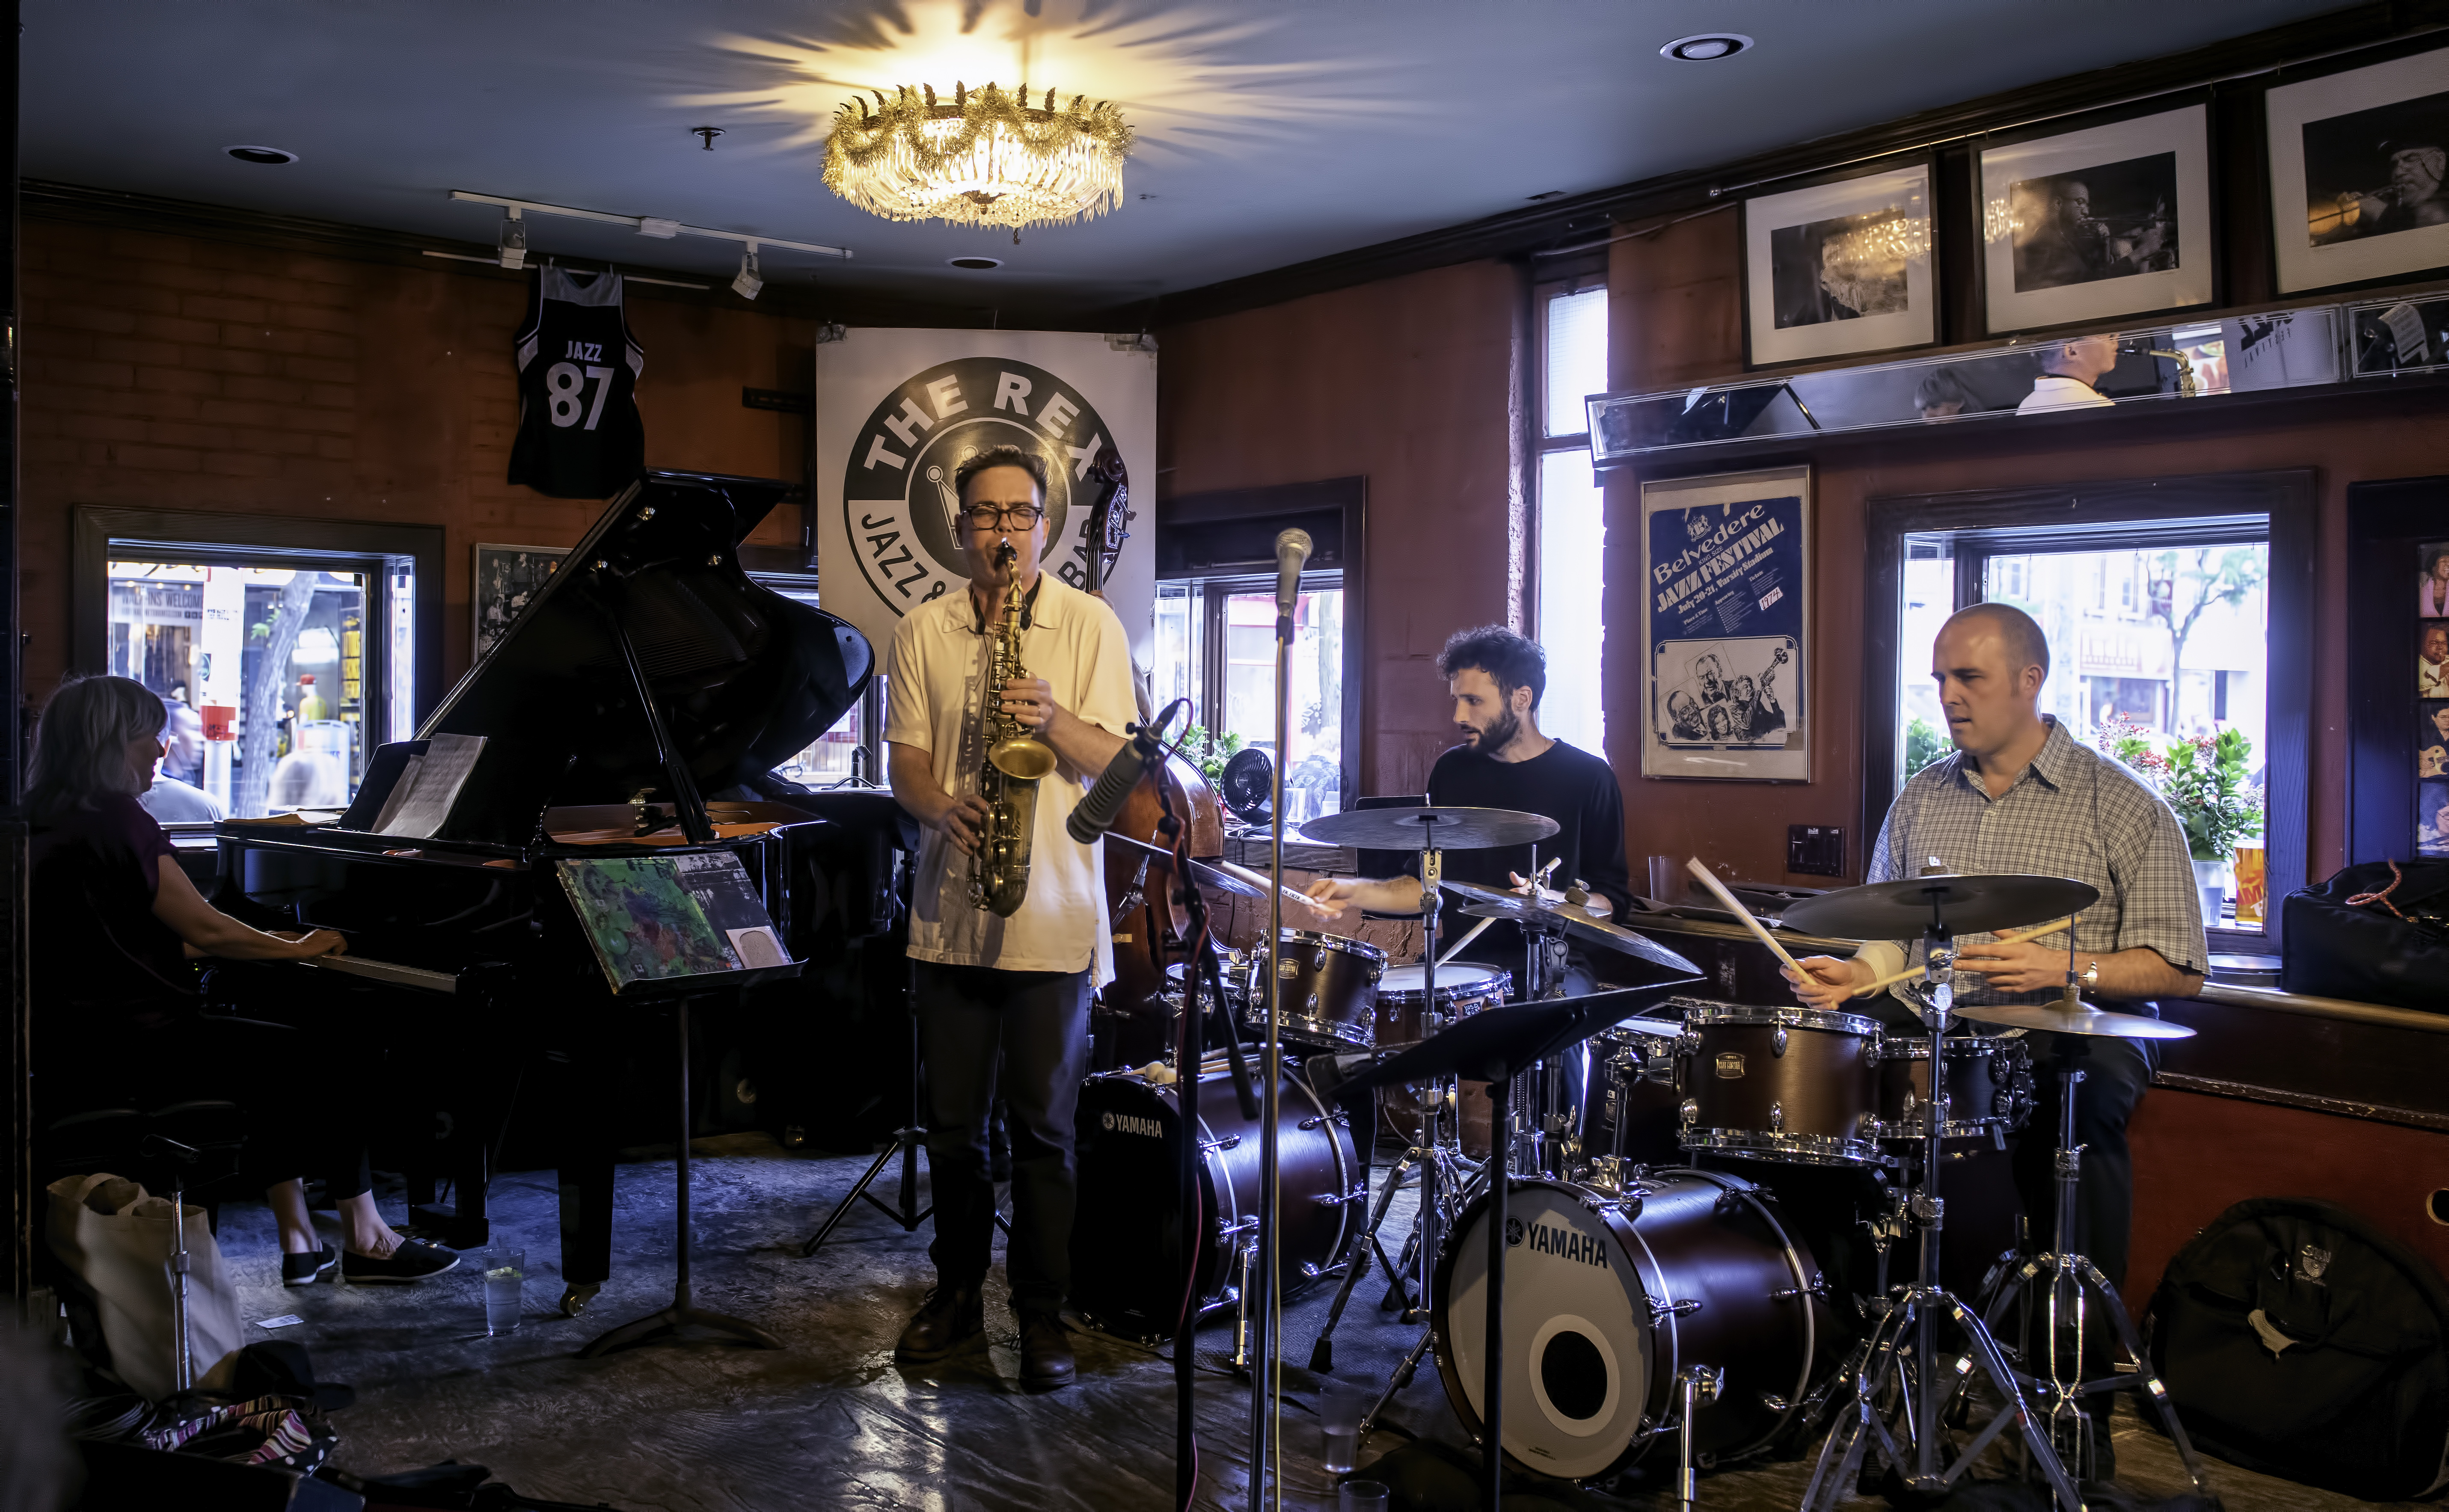 Tania Gill, Brodie West, Evan Cartwright and Nick Fraser with the Brodie West Quintet at the Rex Jazz Bar at the Toronto Jazz Festival 2019